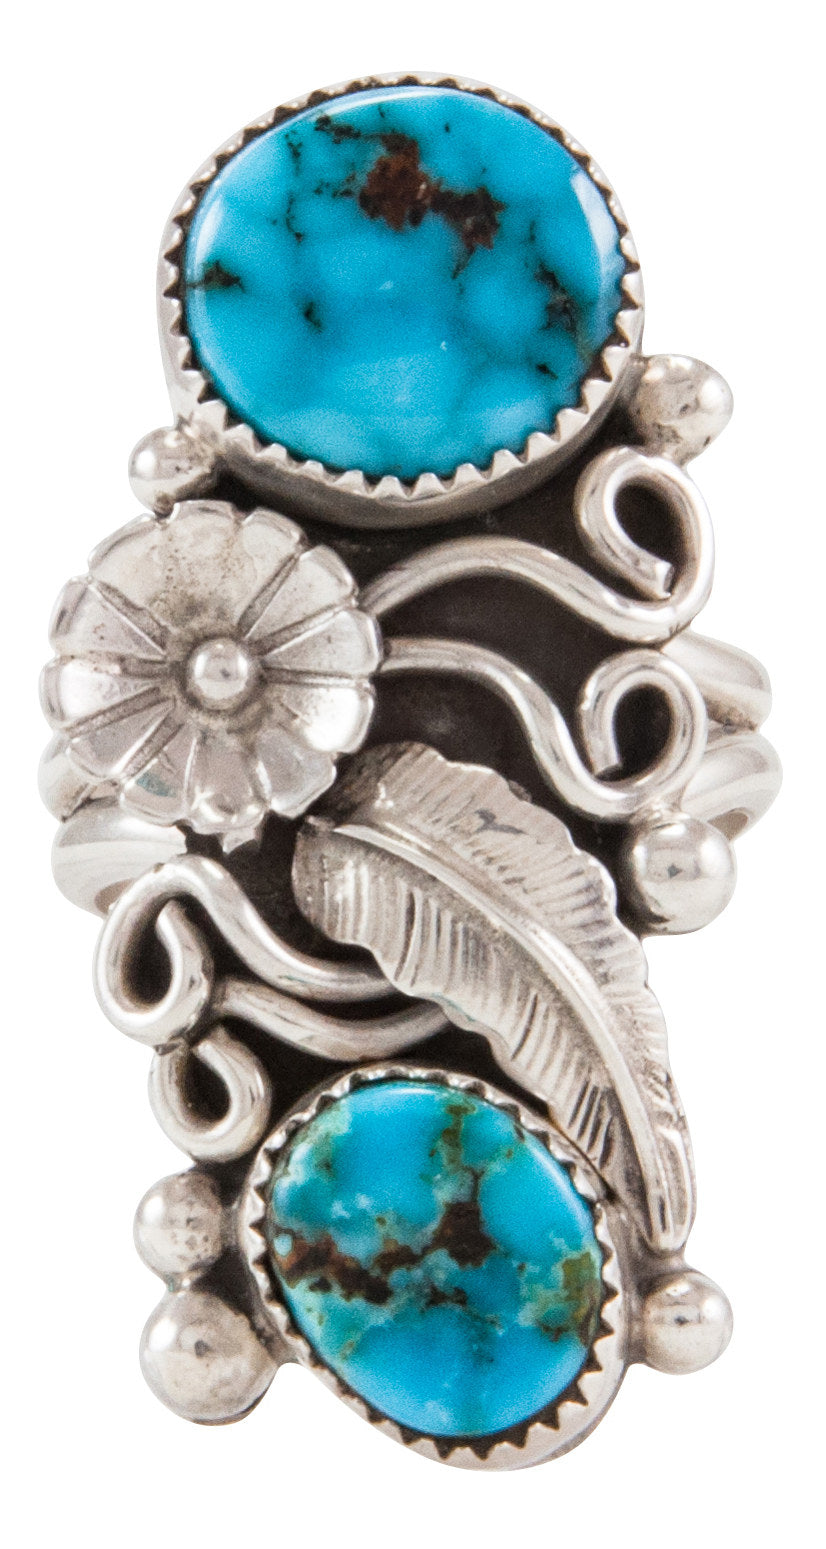 Navajo Native American Kingman Turquoise Ring Size 10 by Kenneth Jones